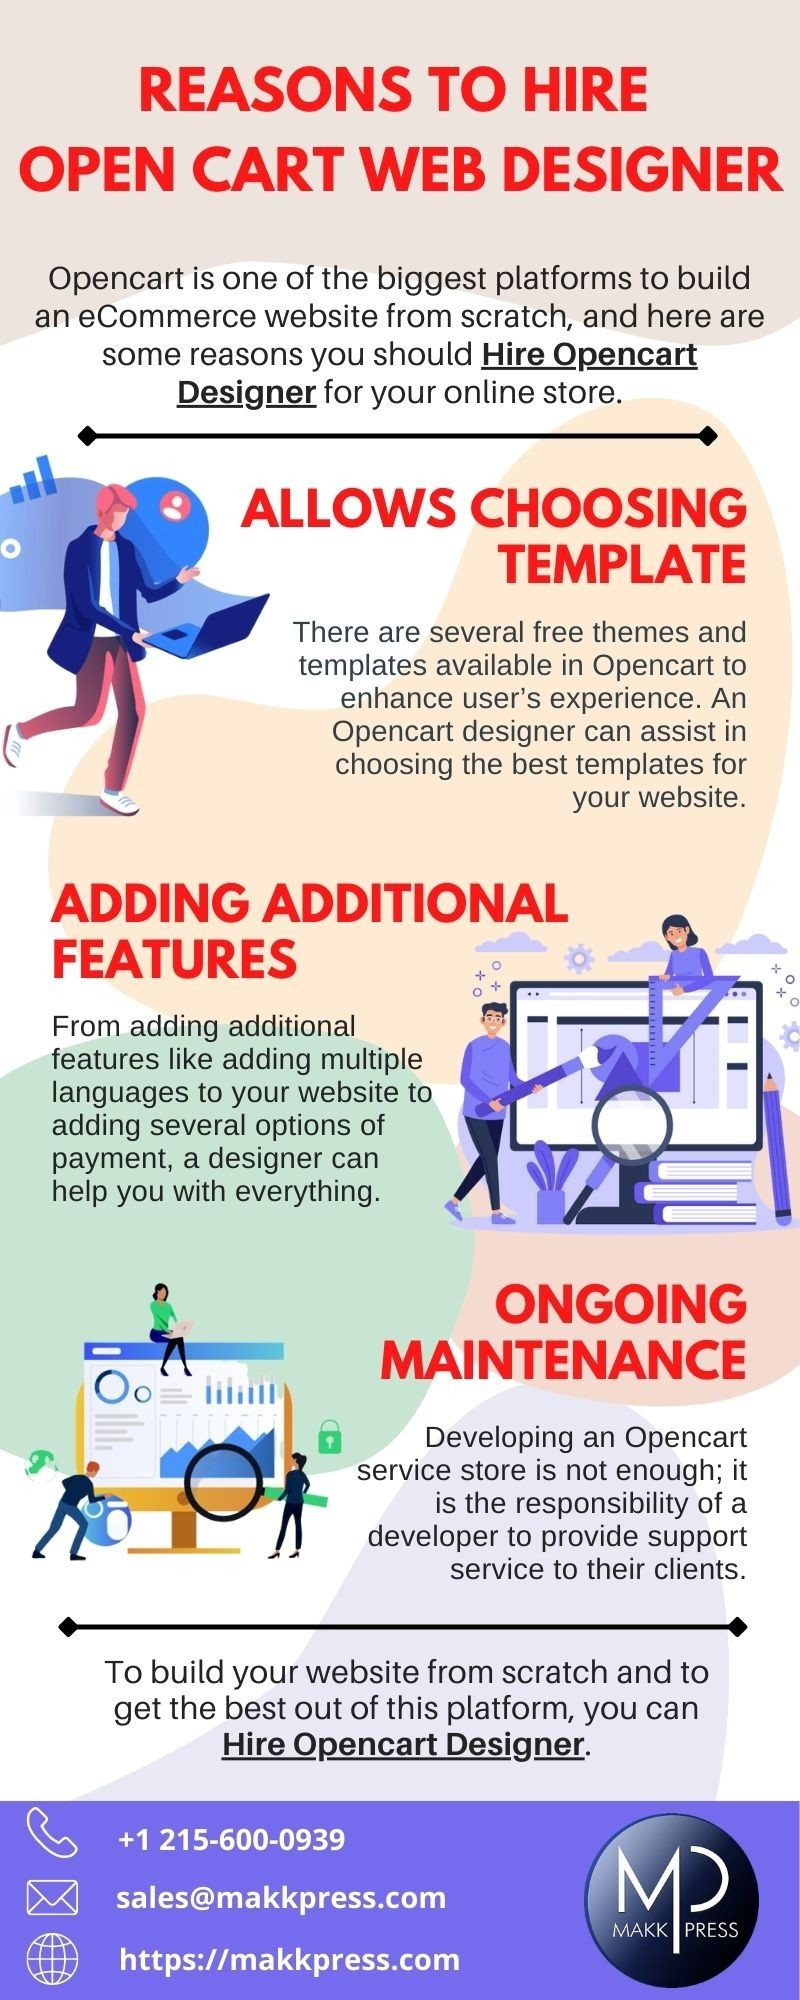 Reasons to Hire Open Cart Web Designer